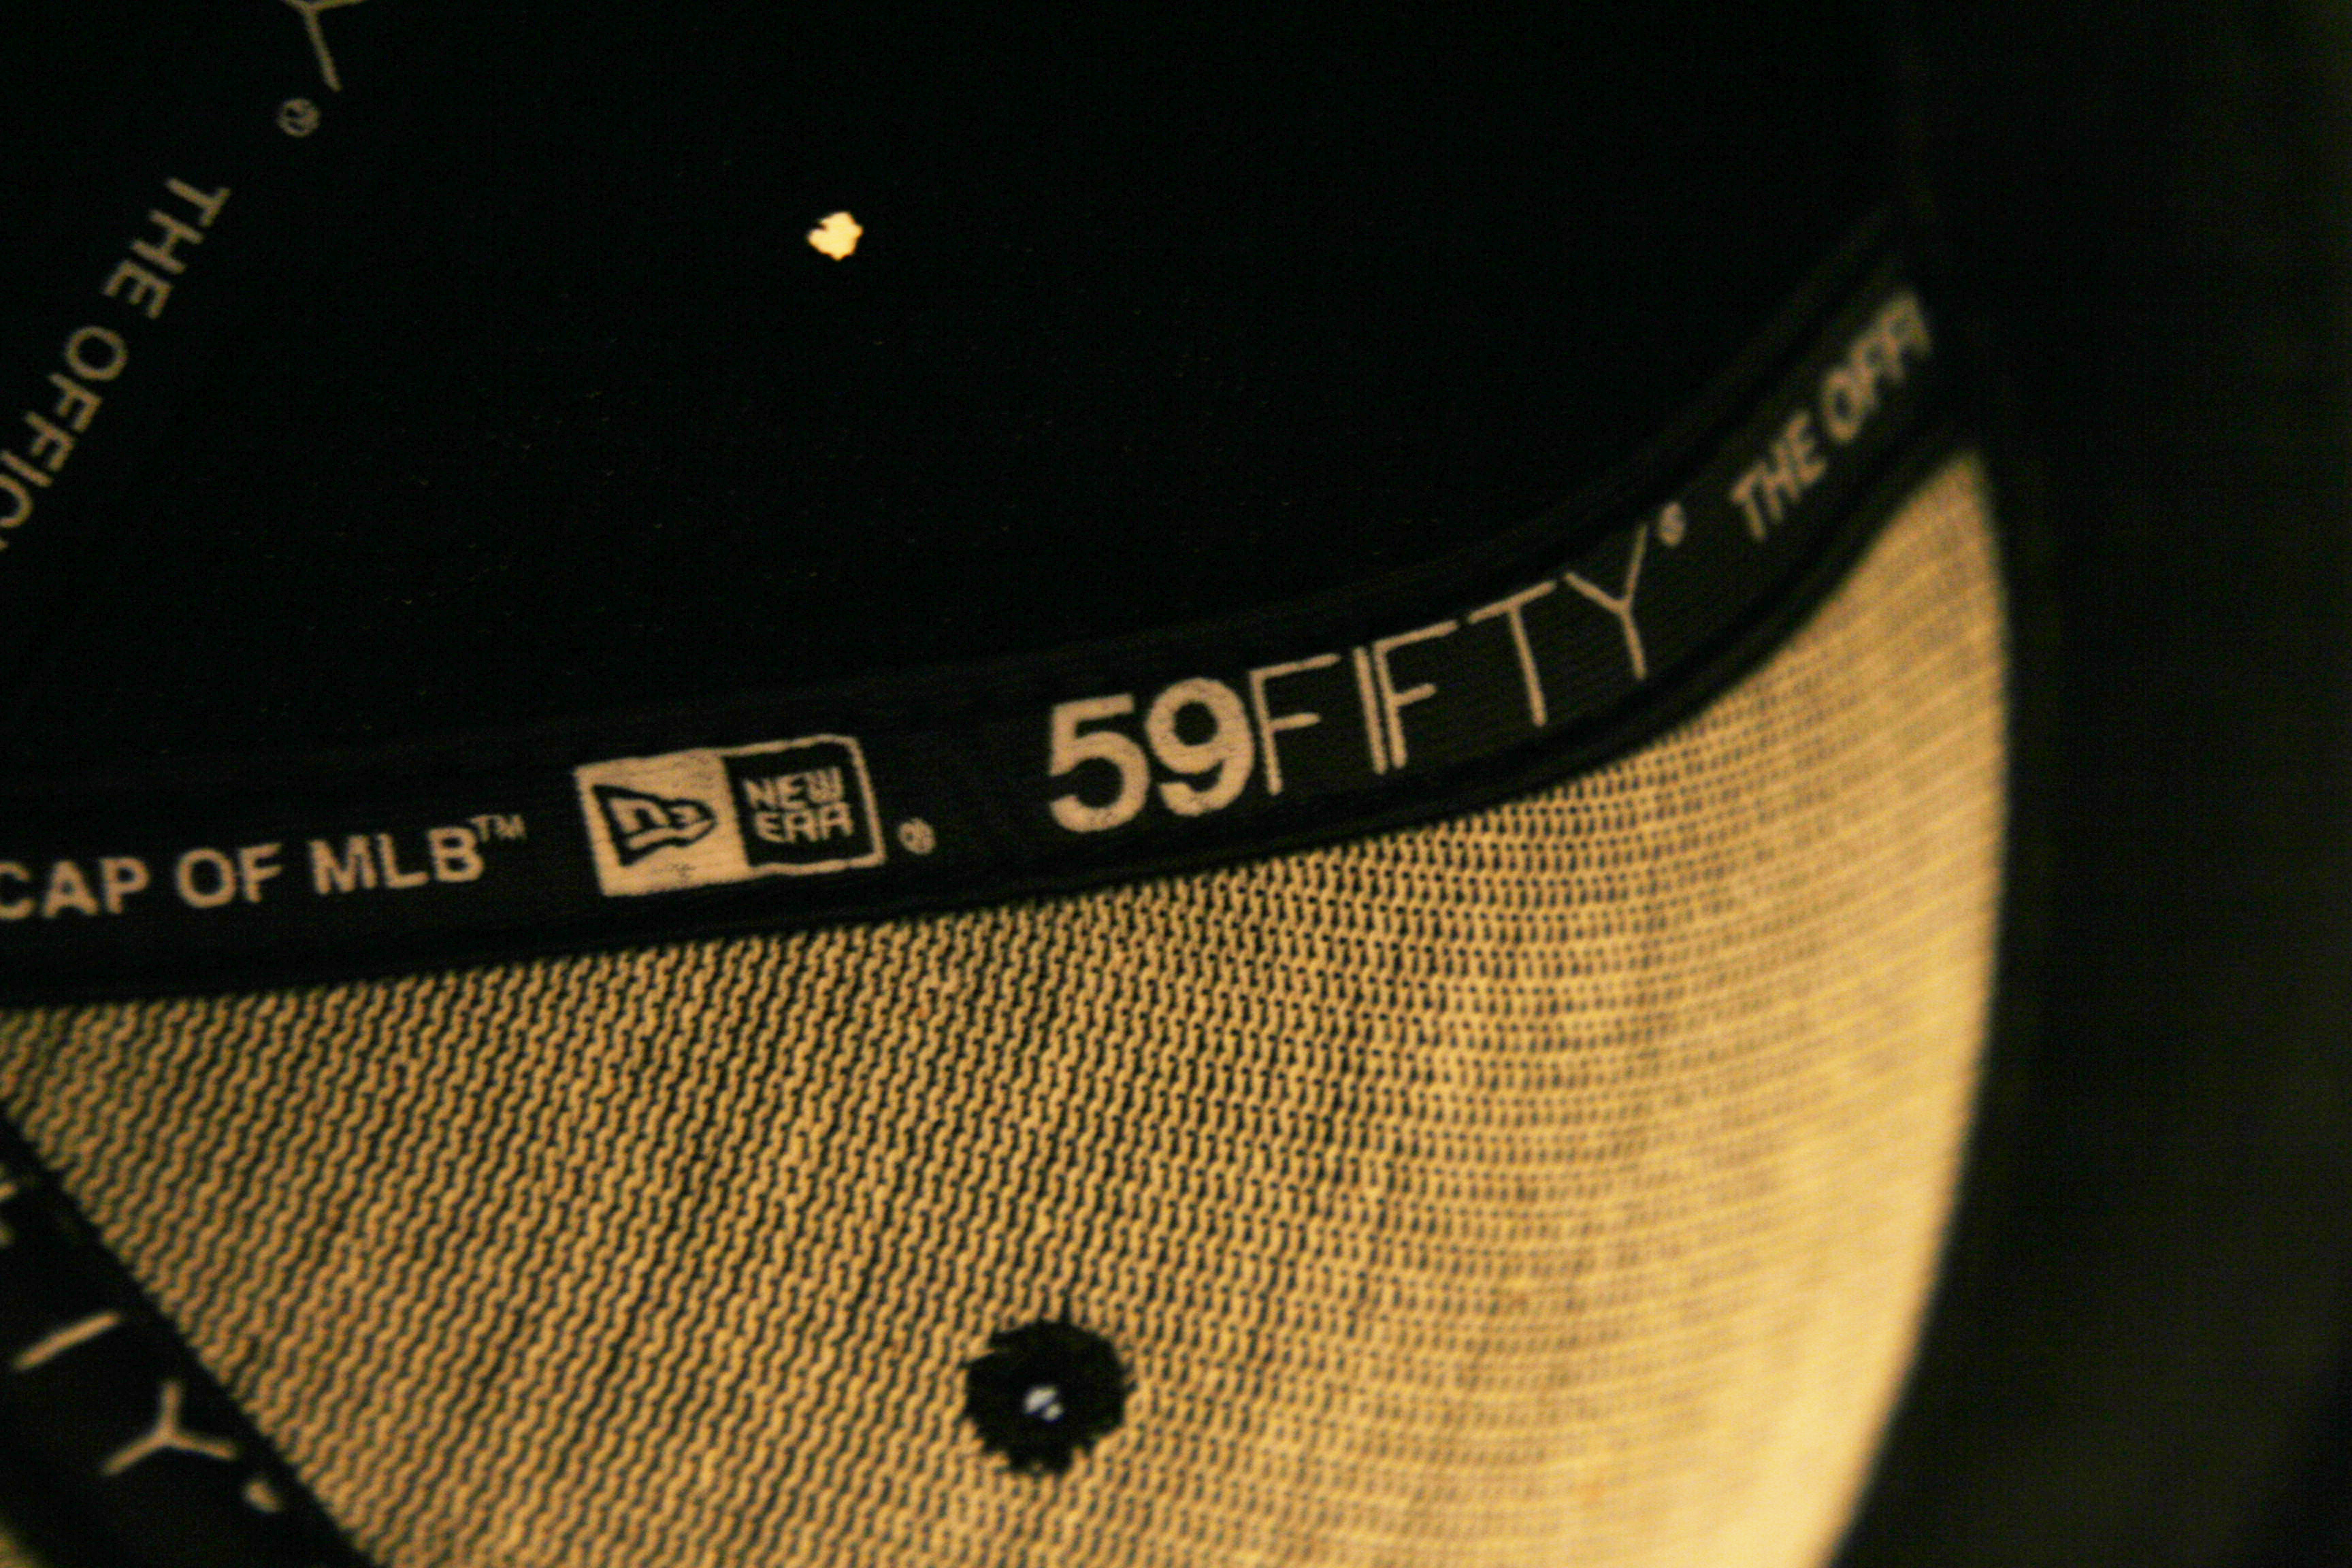 20807b7f93c 59Fifty - Wikipedia